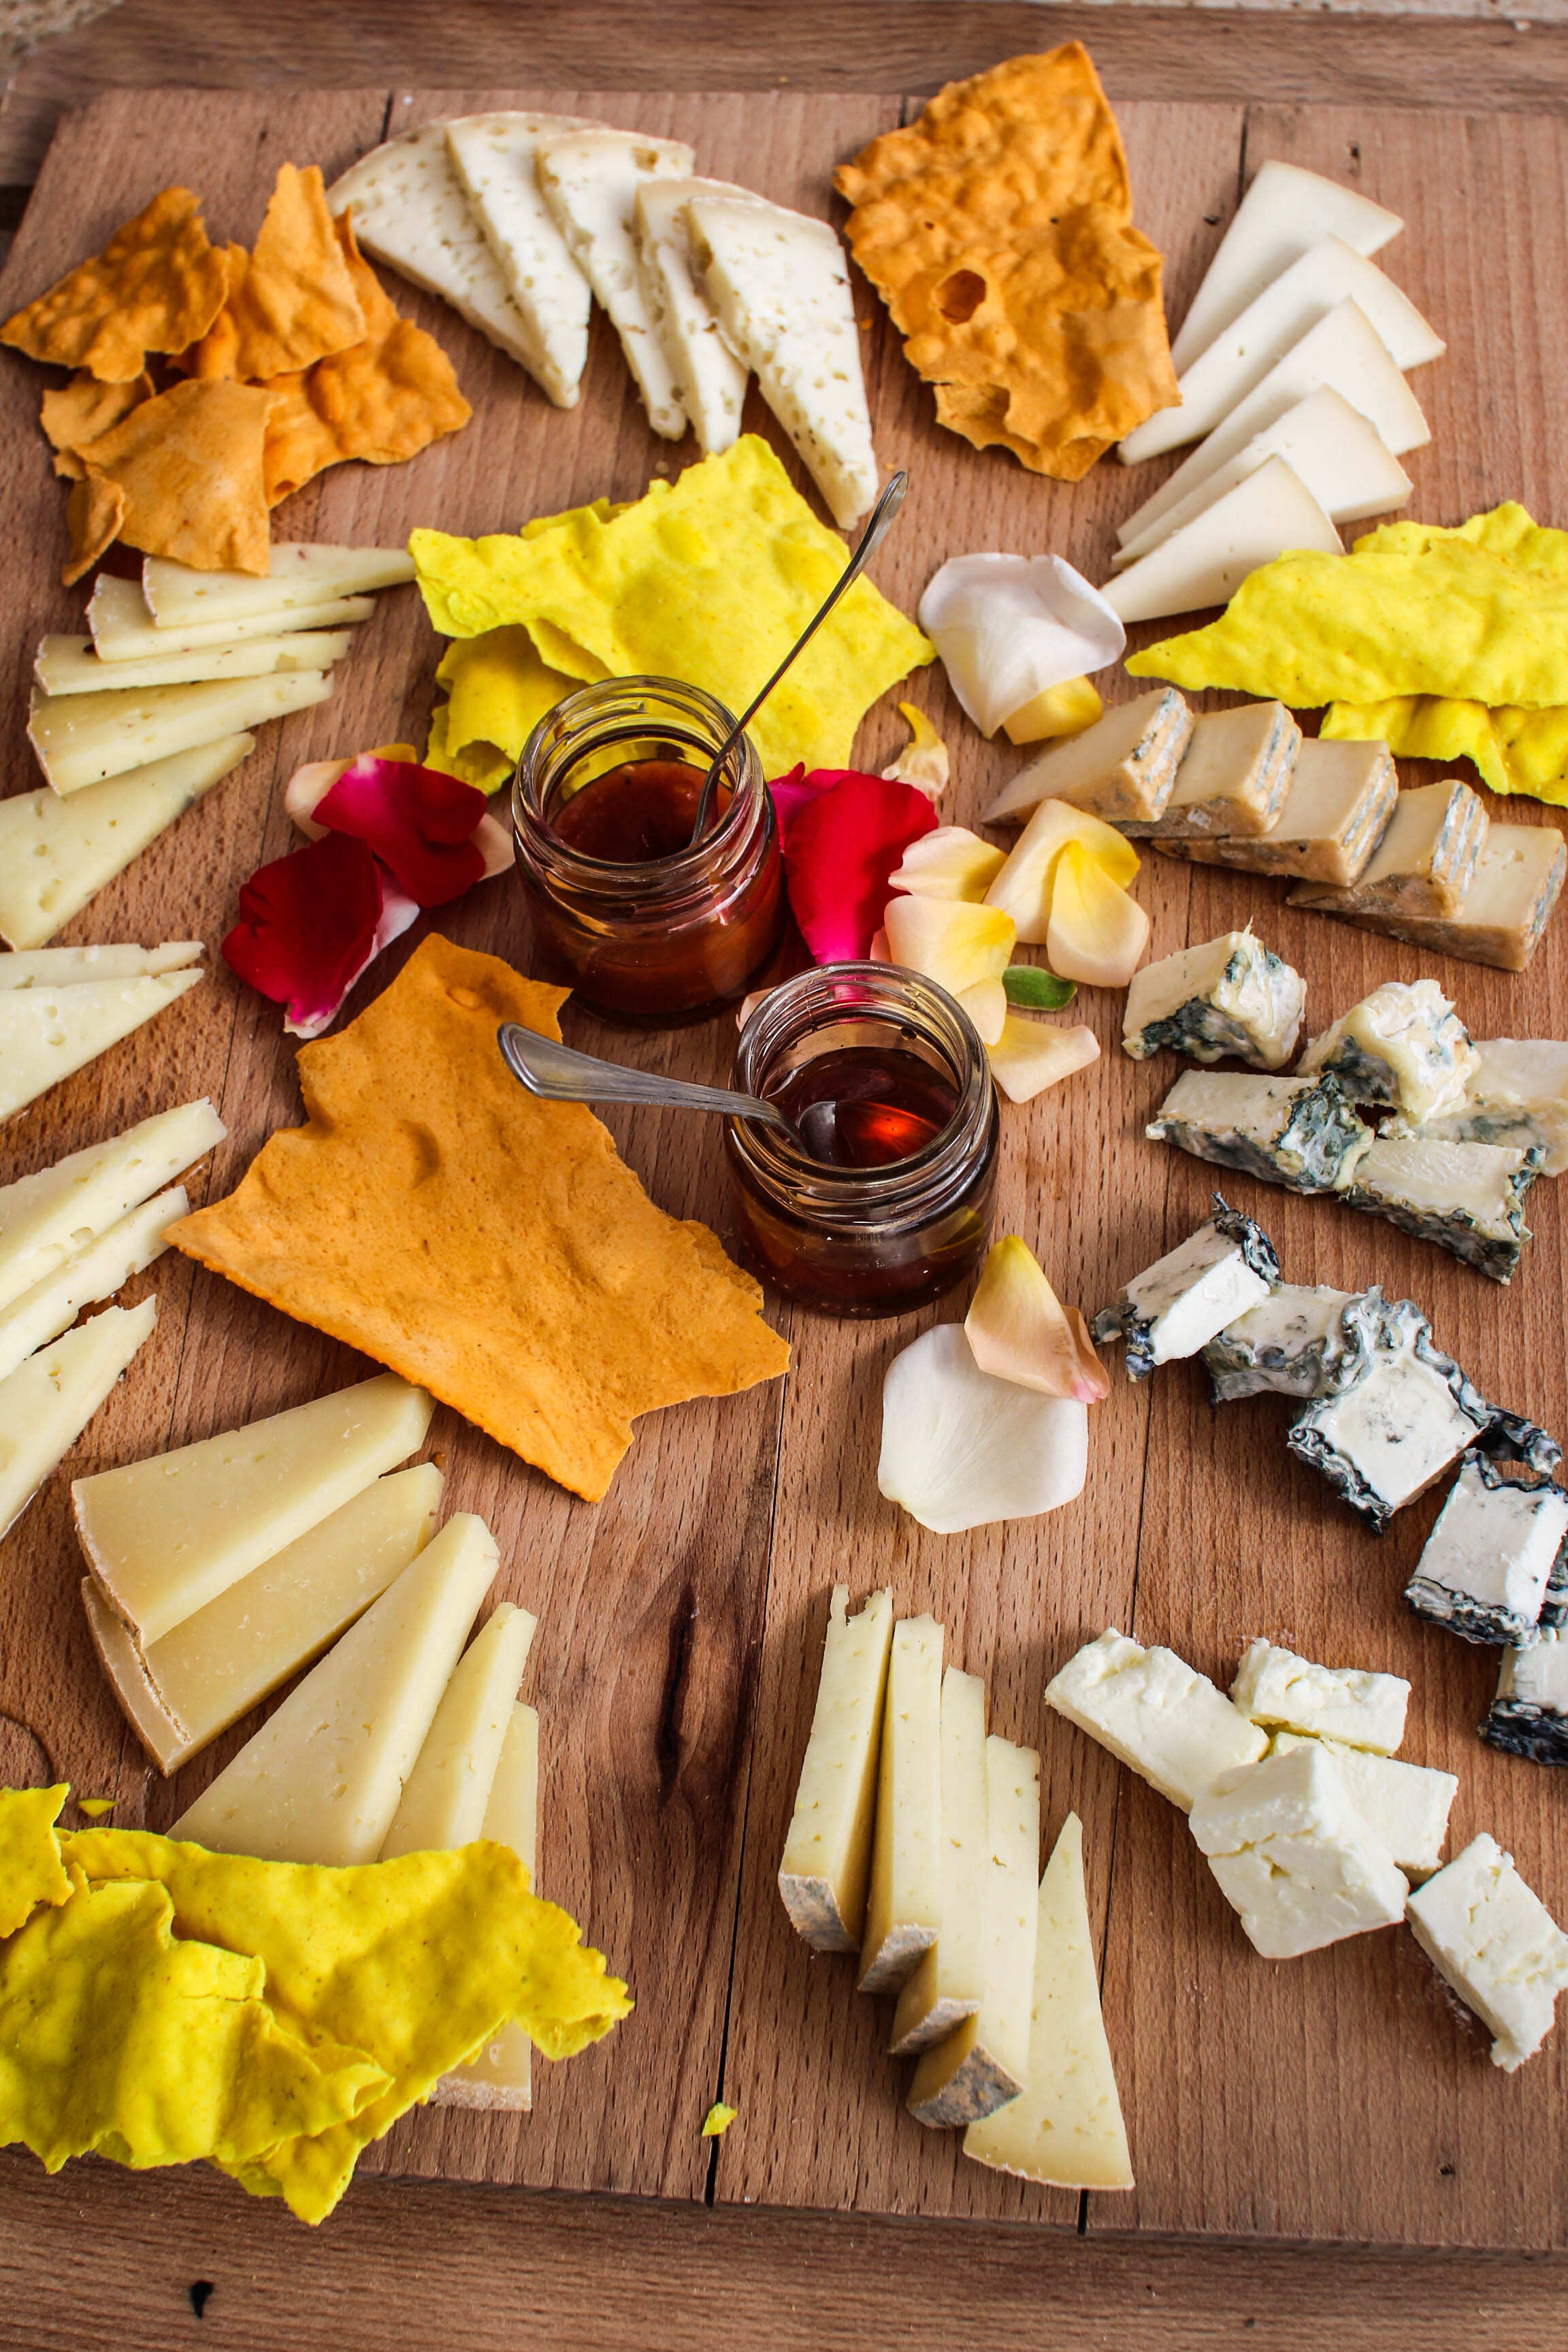 I could not wrap up this post without showing you our cheese platter from Podere Il Casale - AMAZING!